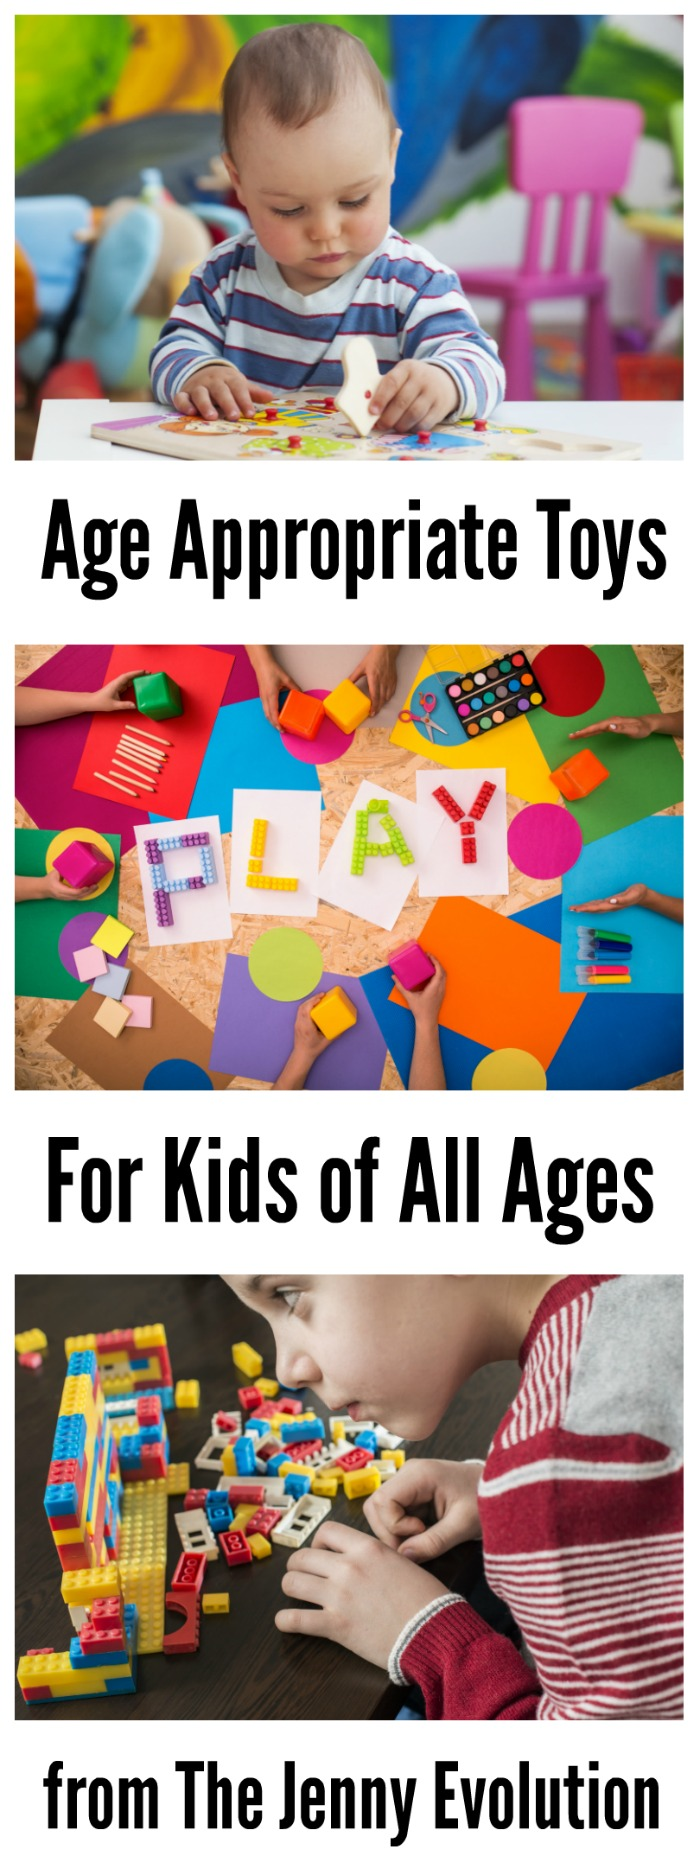 Toys For Ages 9 12 : Age appropriate toys for children of all ages the jenny